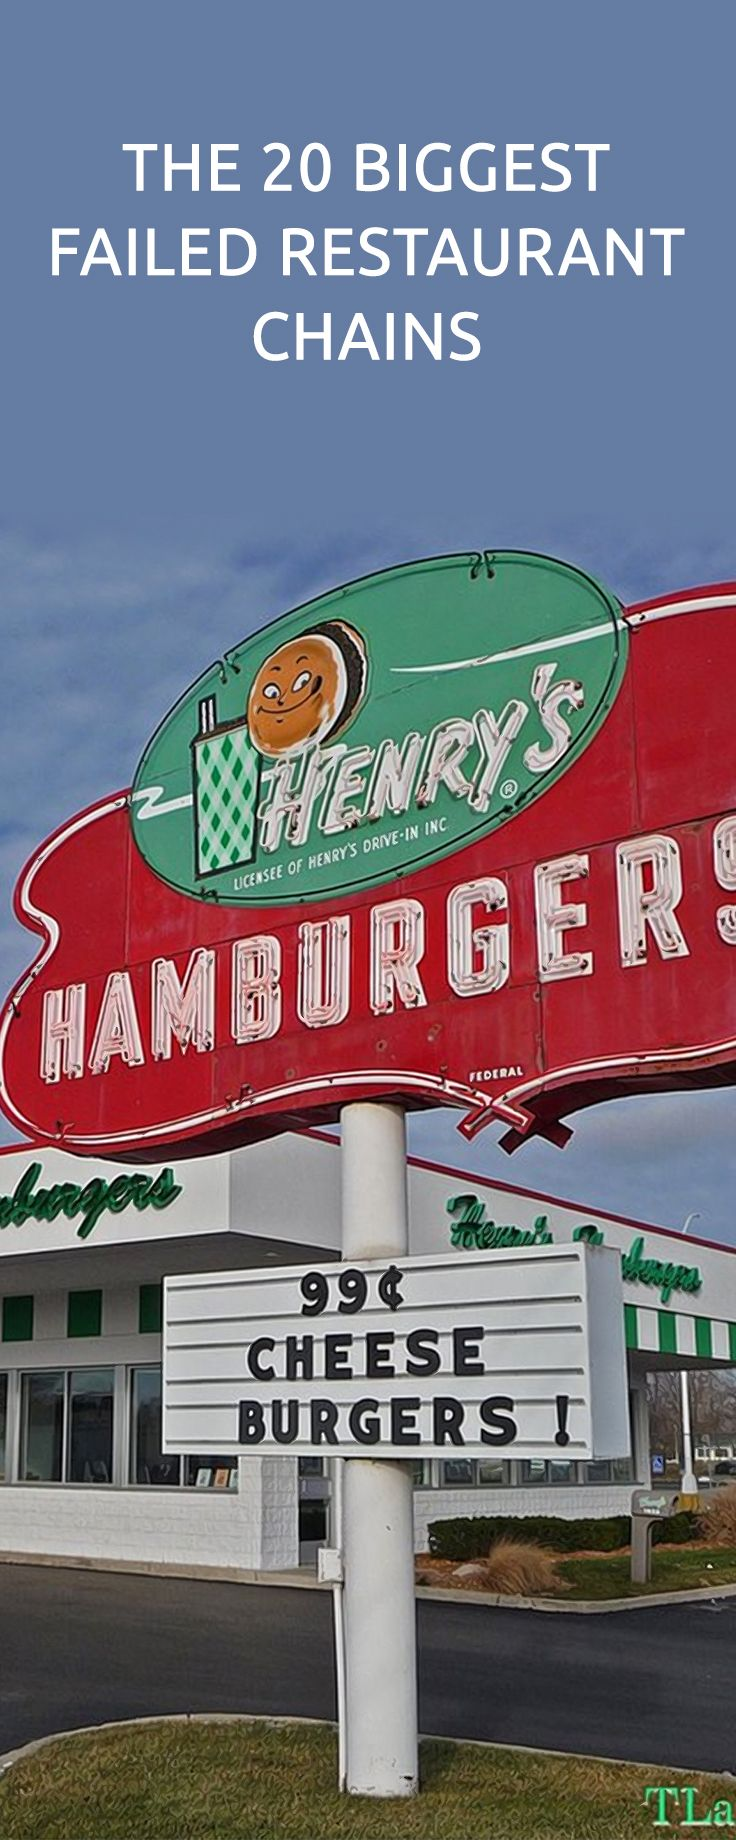 We Collected Famous Restaurant Chains That No Longer Exist Can You Still Recall Them